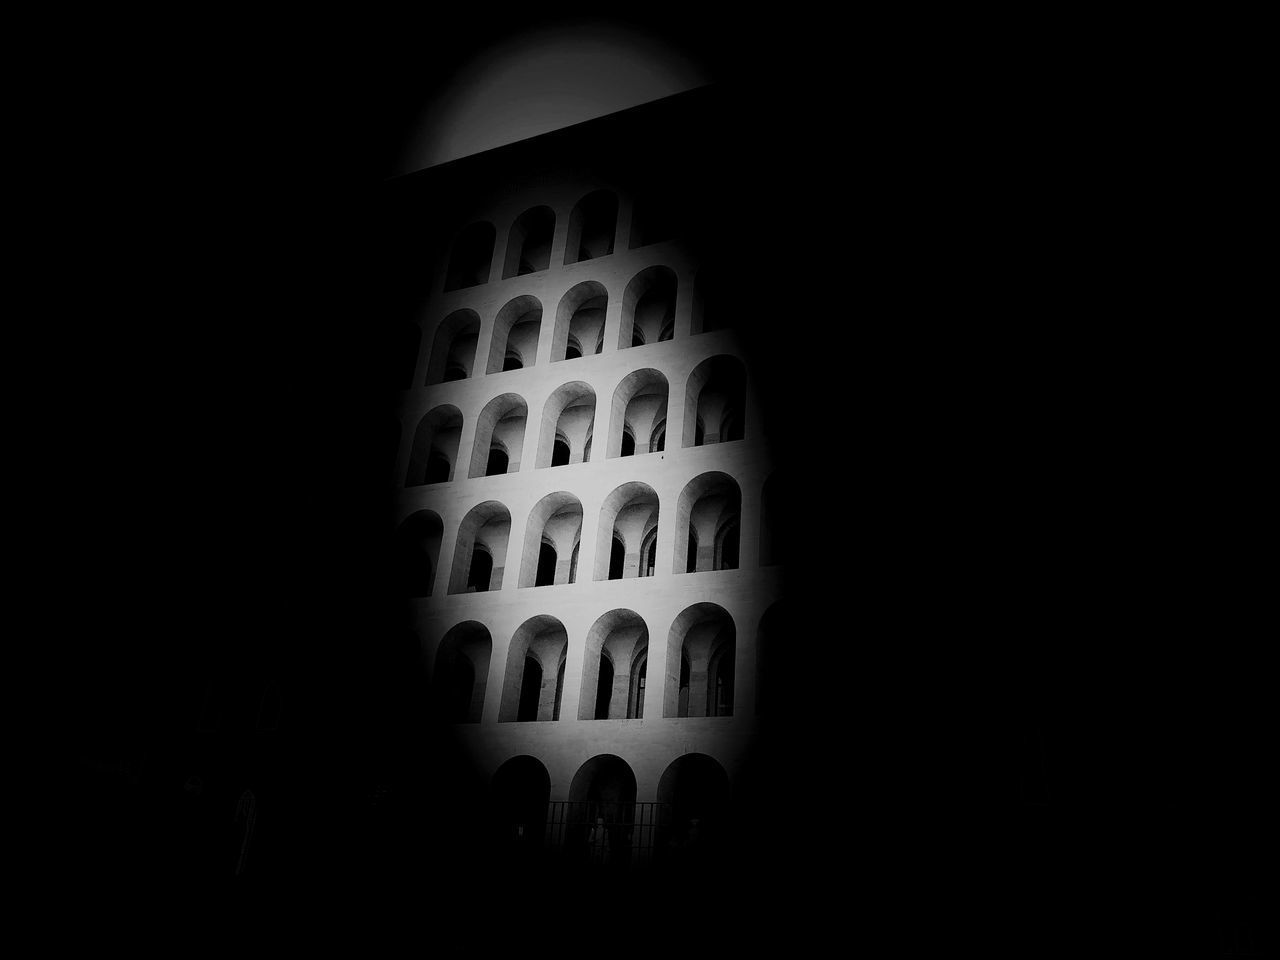 indoors, no people, copy space, dark, low angle view, built structure, architecture, window, night, pattern, arch, black background, design, studio shot, domestic room, building, nature, shape, architecture and art